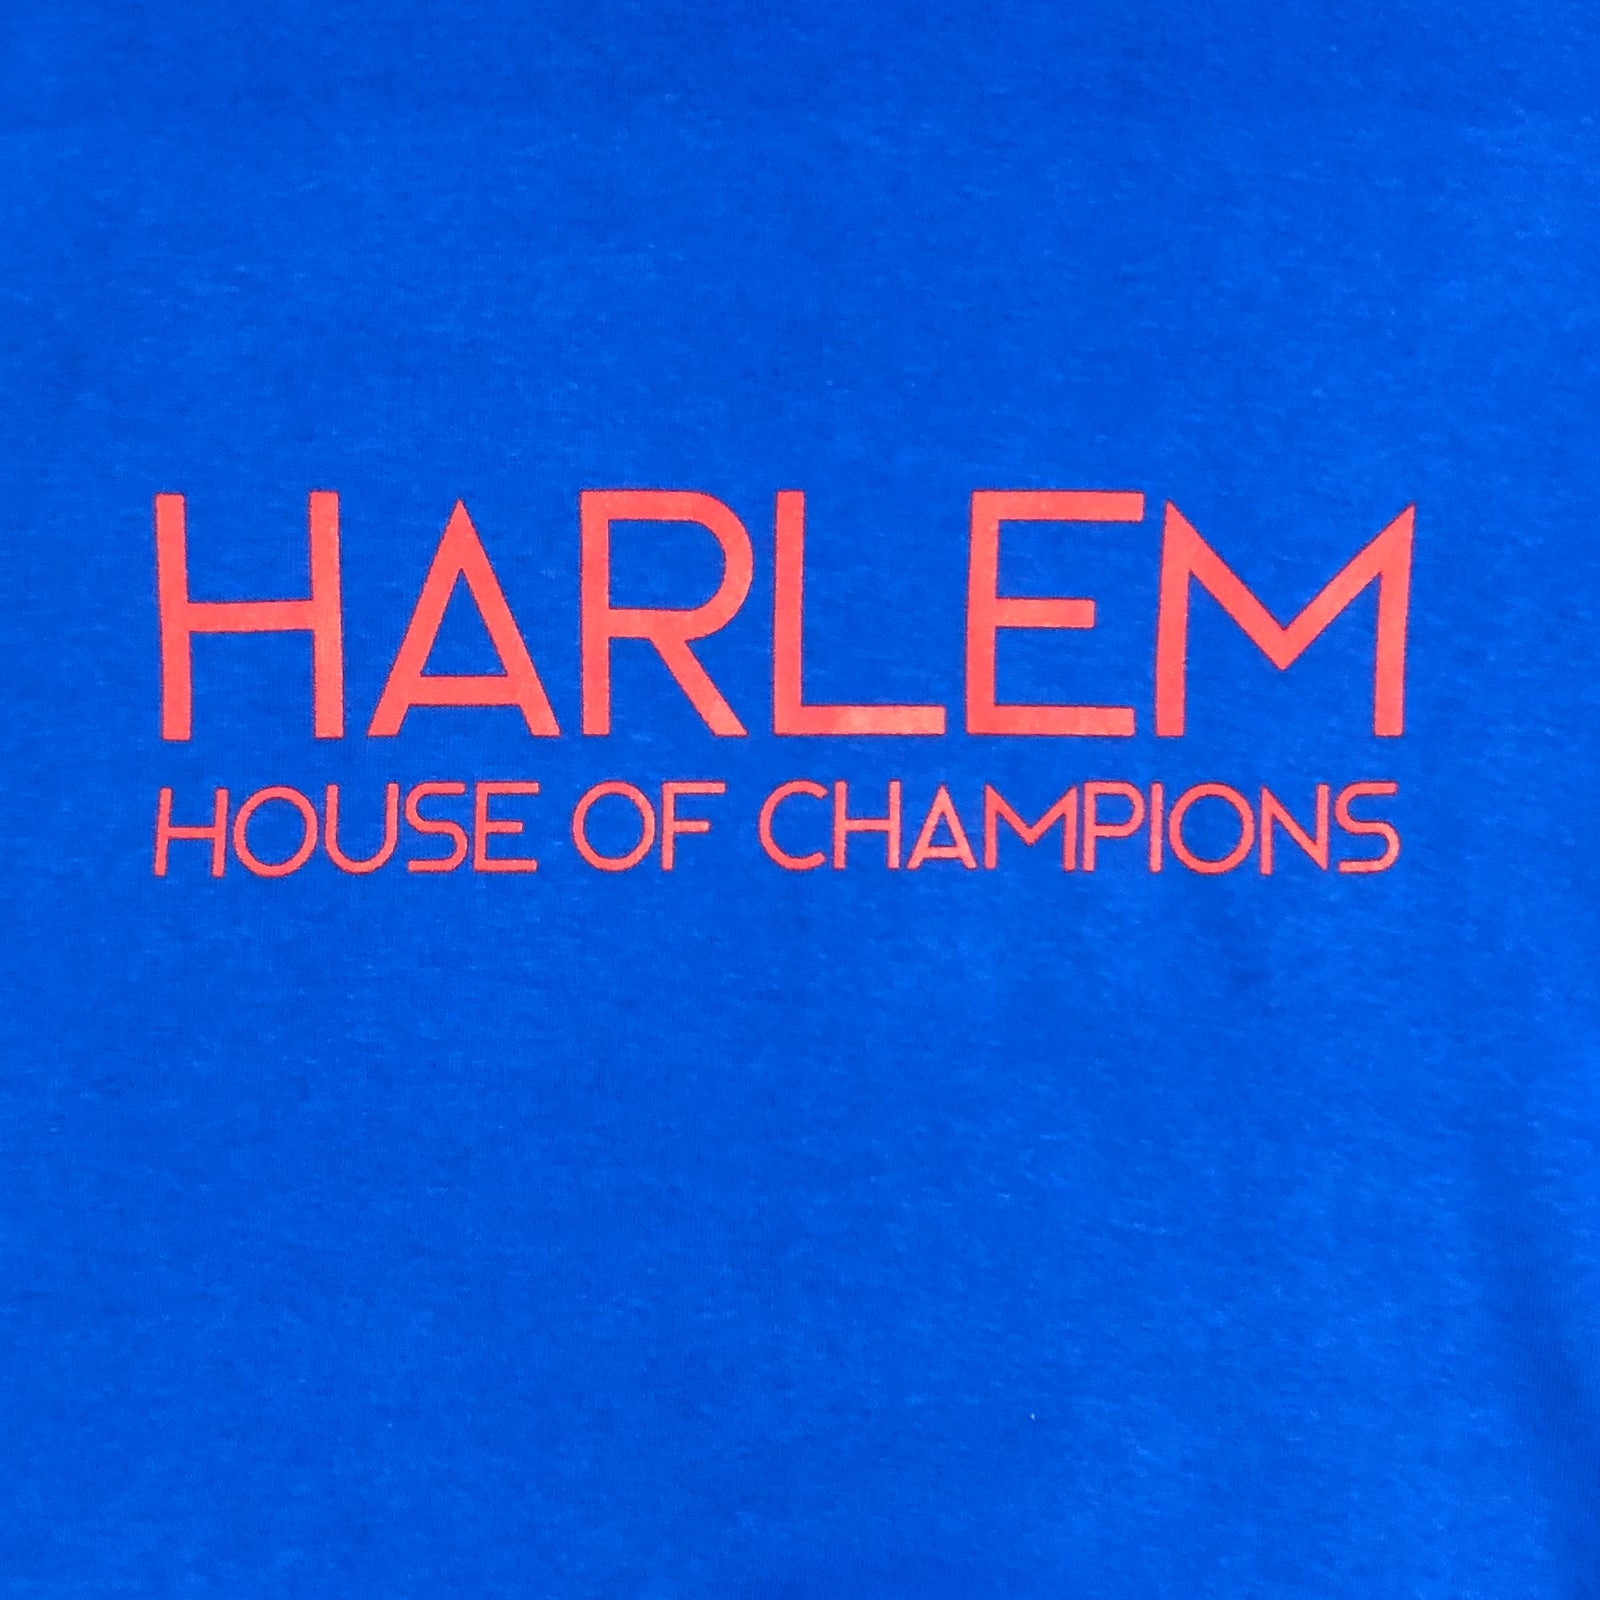 Harlem House of Champions Hoodie